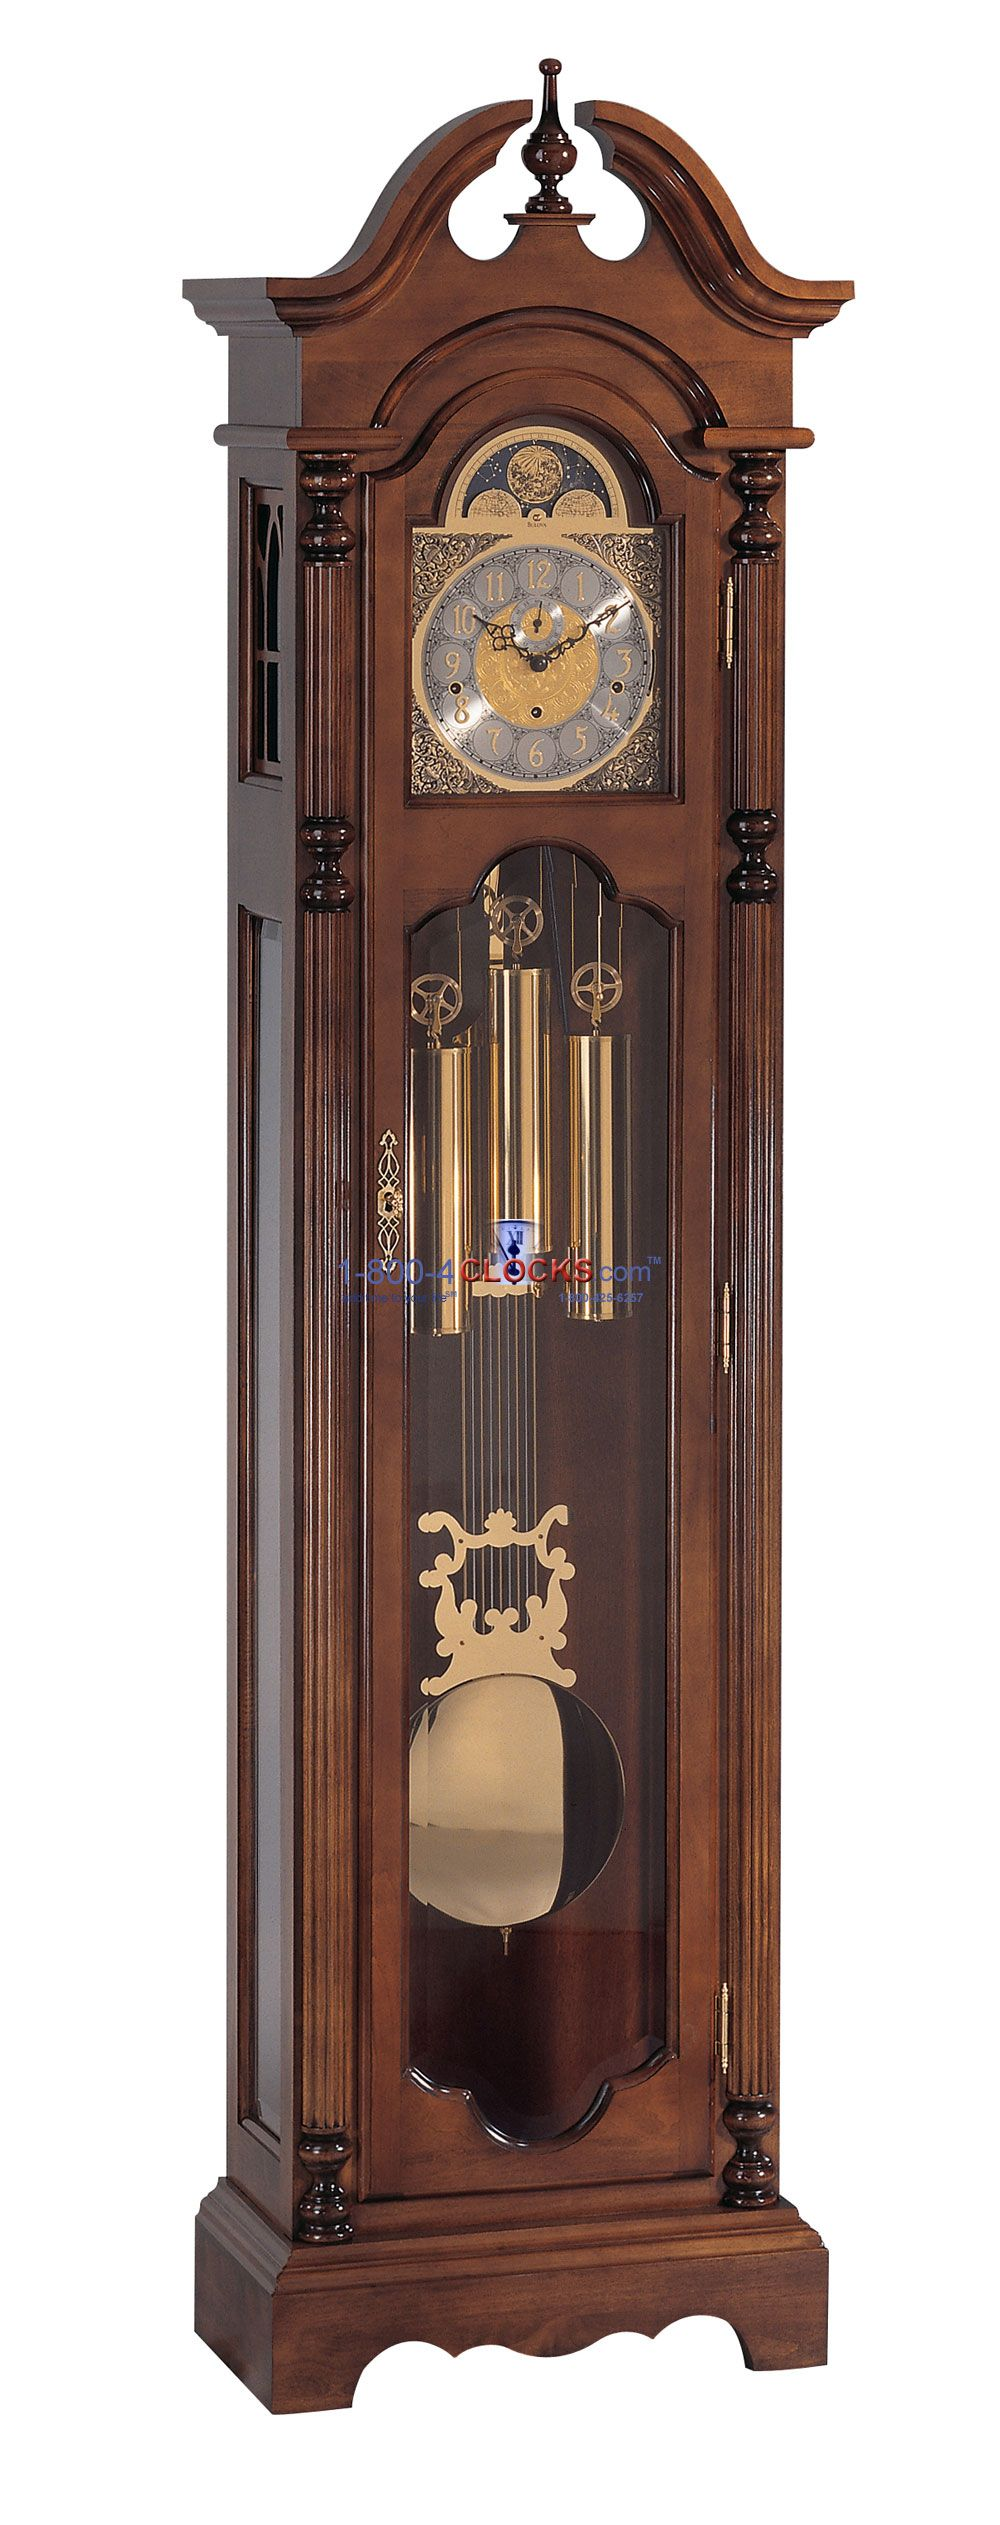 grandfather clocks shop featuring howard miller grandfather clock collection wall clocks and mantel clocks collections a really dumb thing to do